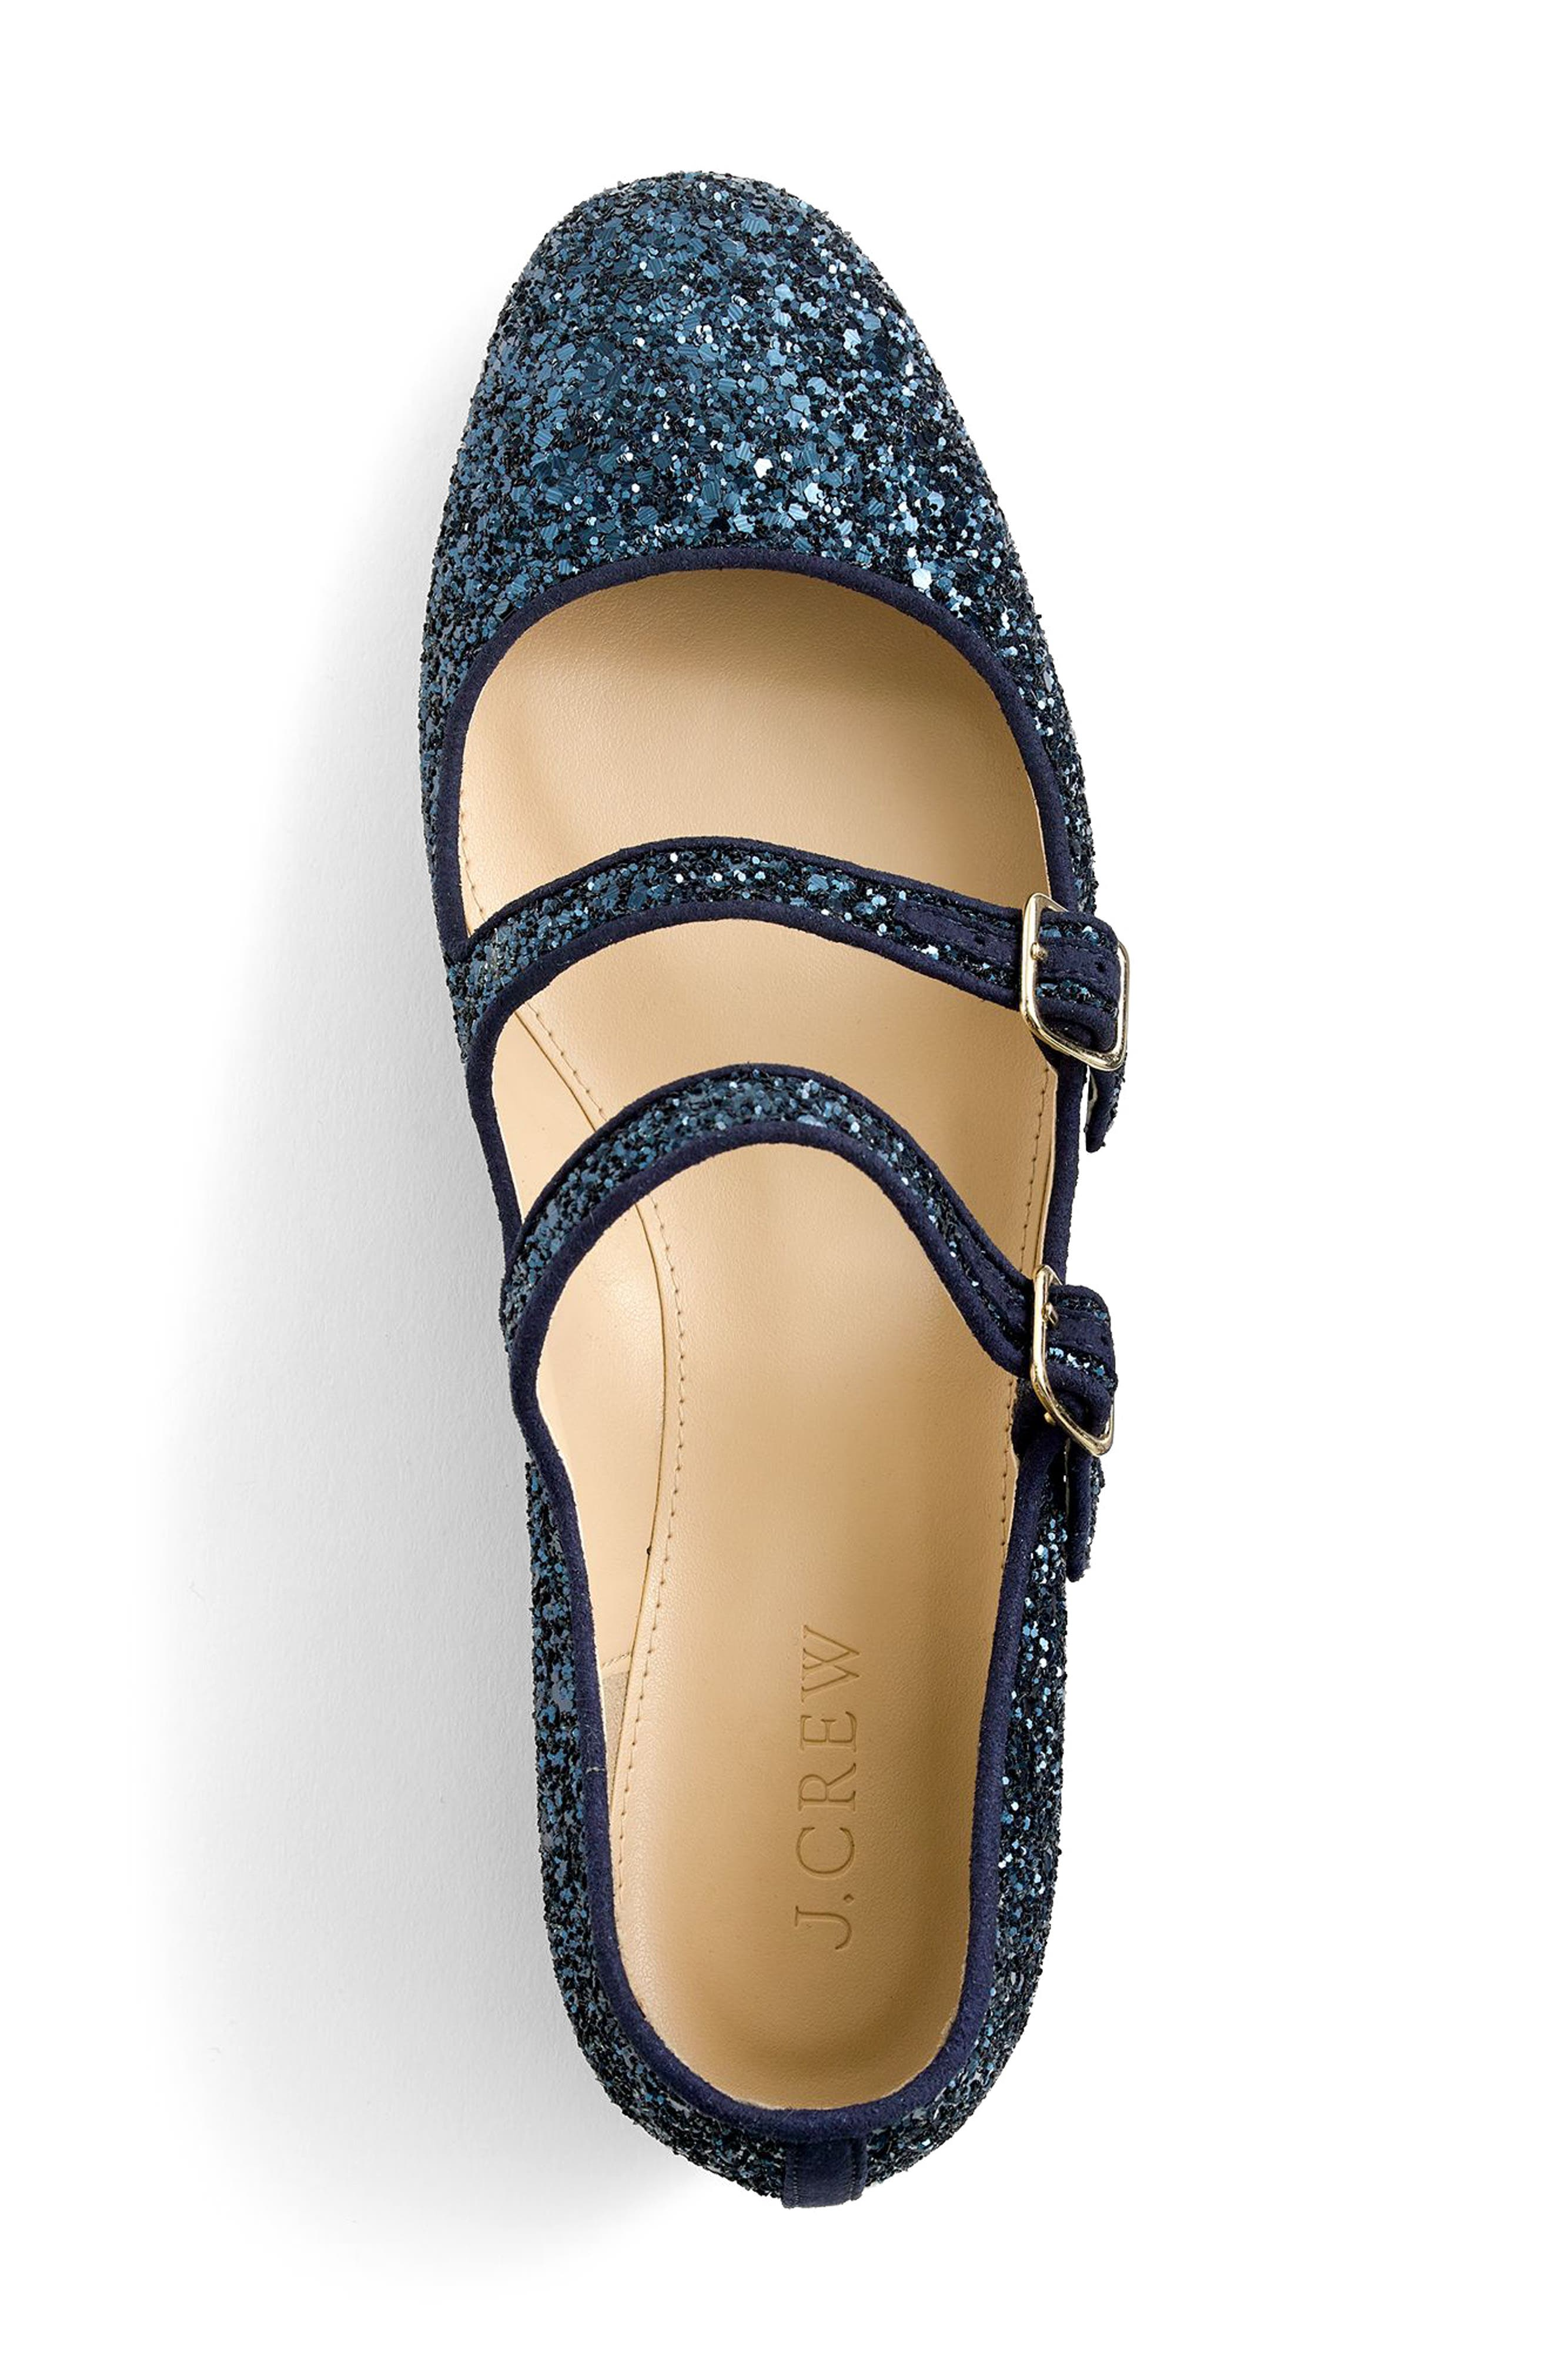 J.Crew Multistrap Mary Jane Flat,                             Alternate thumbnail 3, color,                             Navy Glitter Fabric